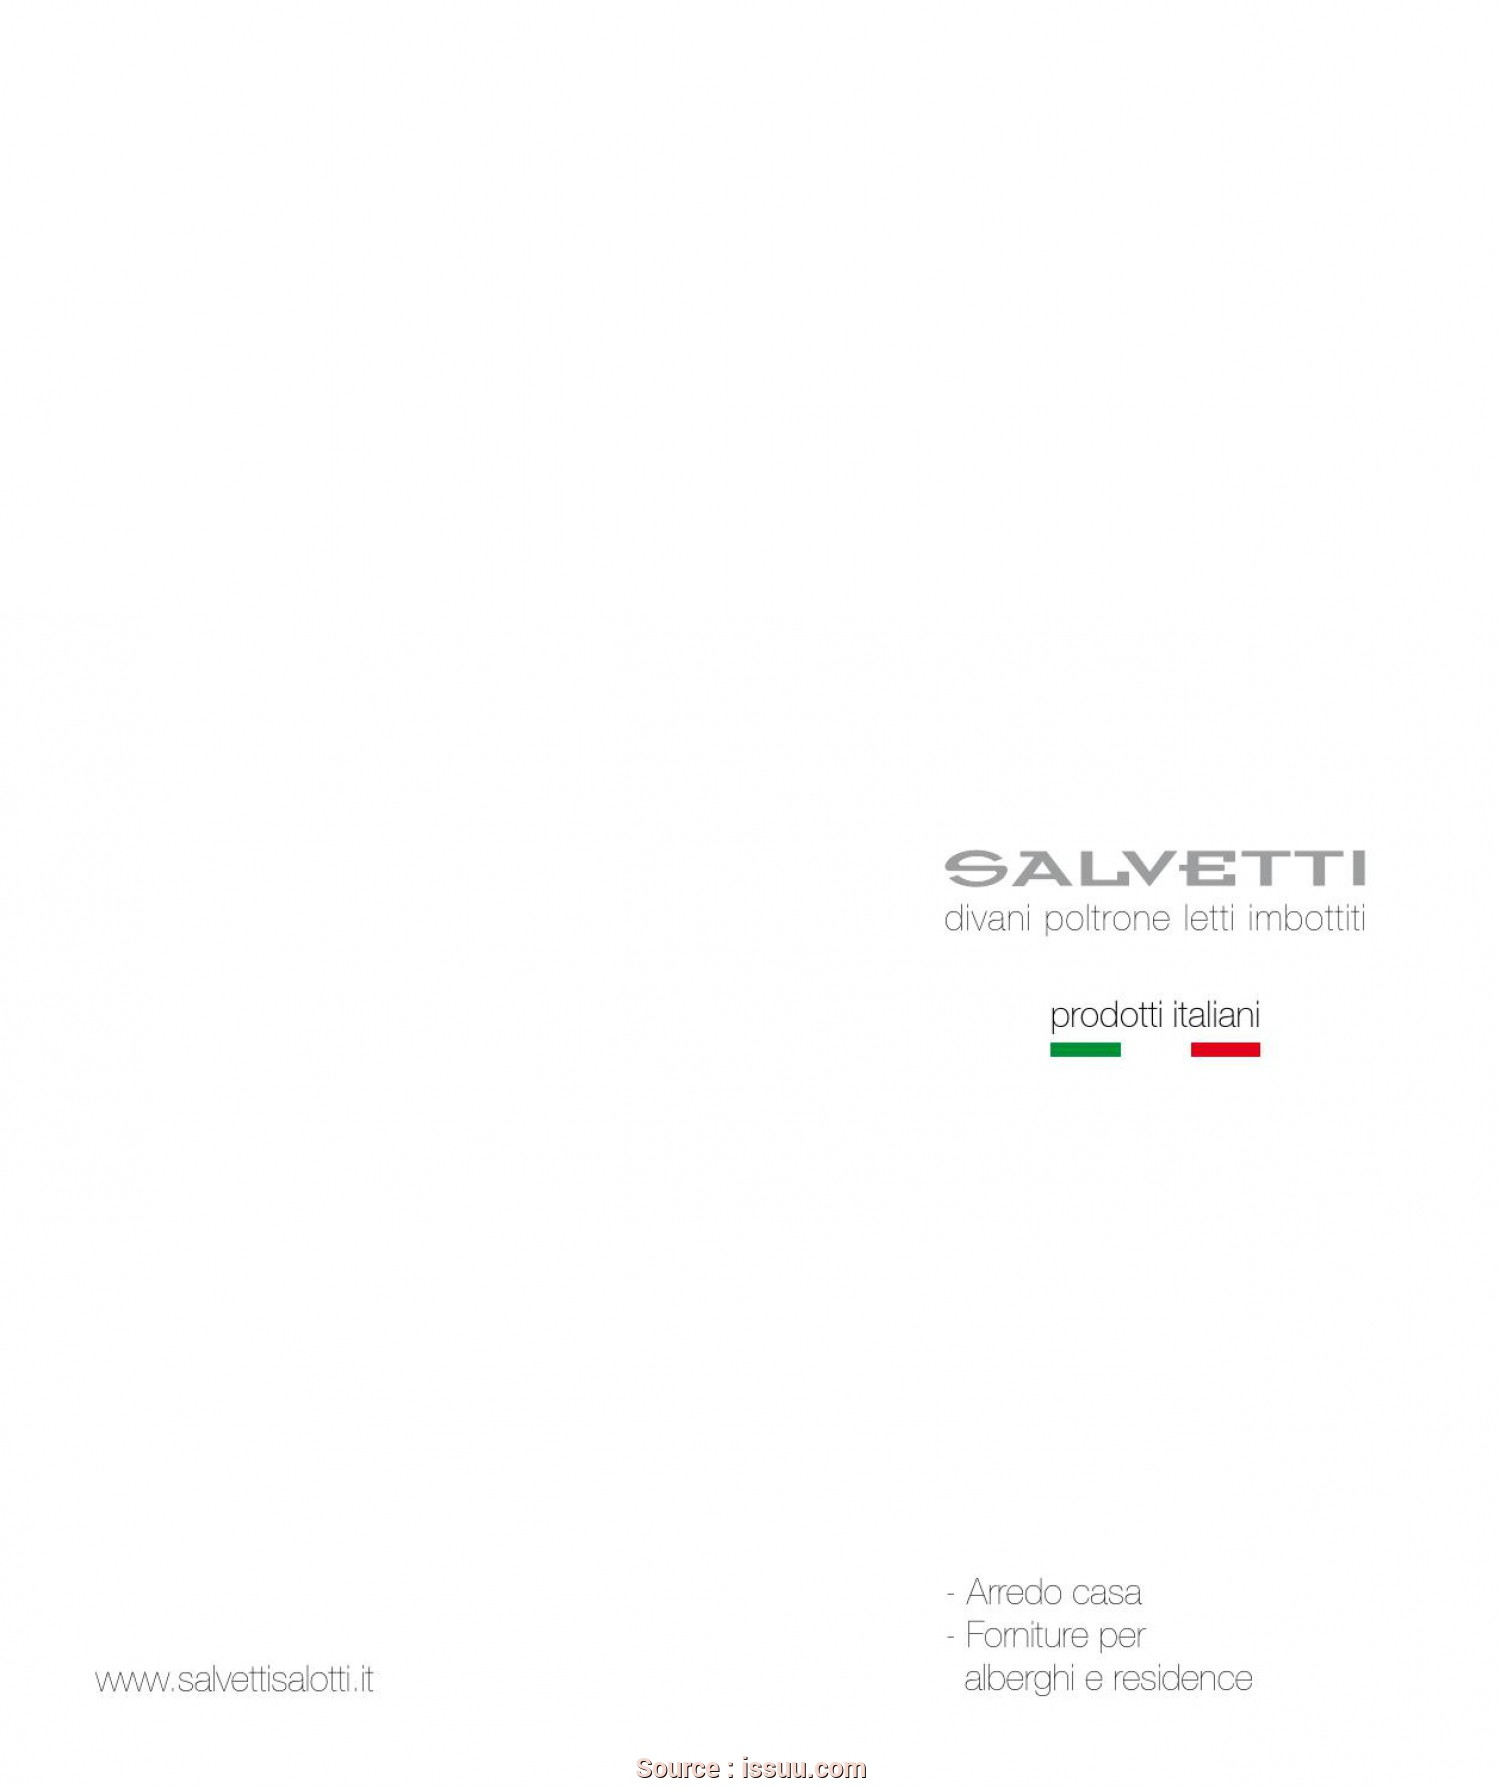 Salvetti Divani Catalogo, Loveable Salvetti By Mobilpro, Issuu